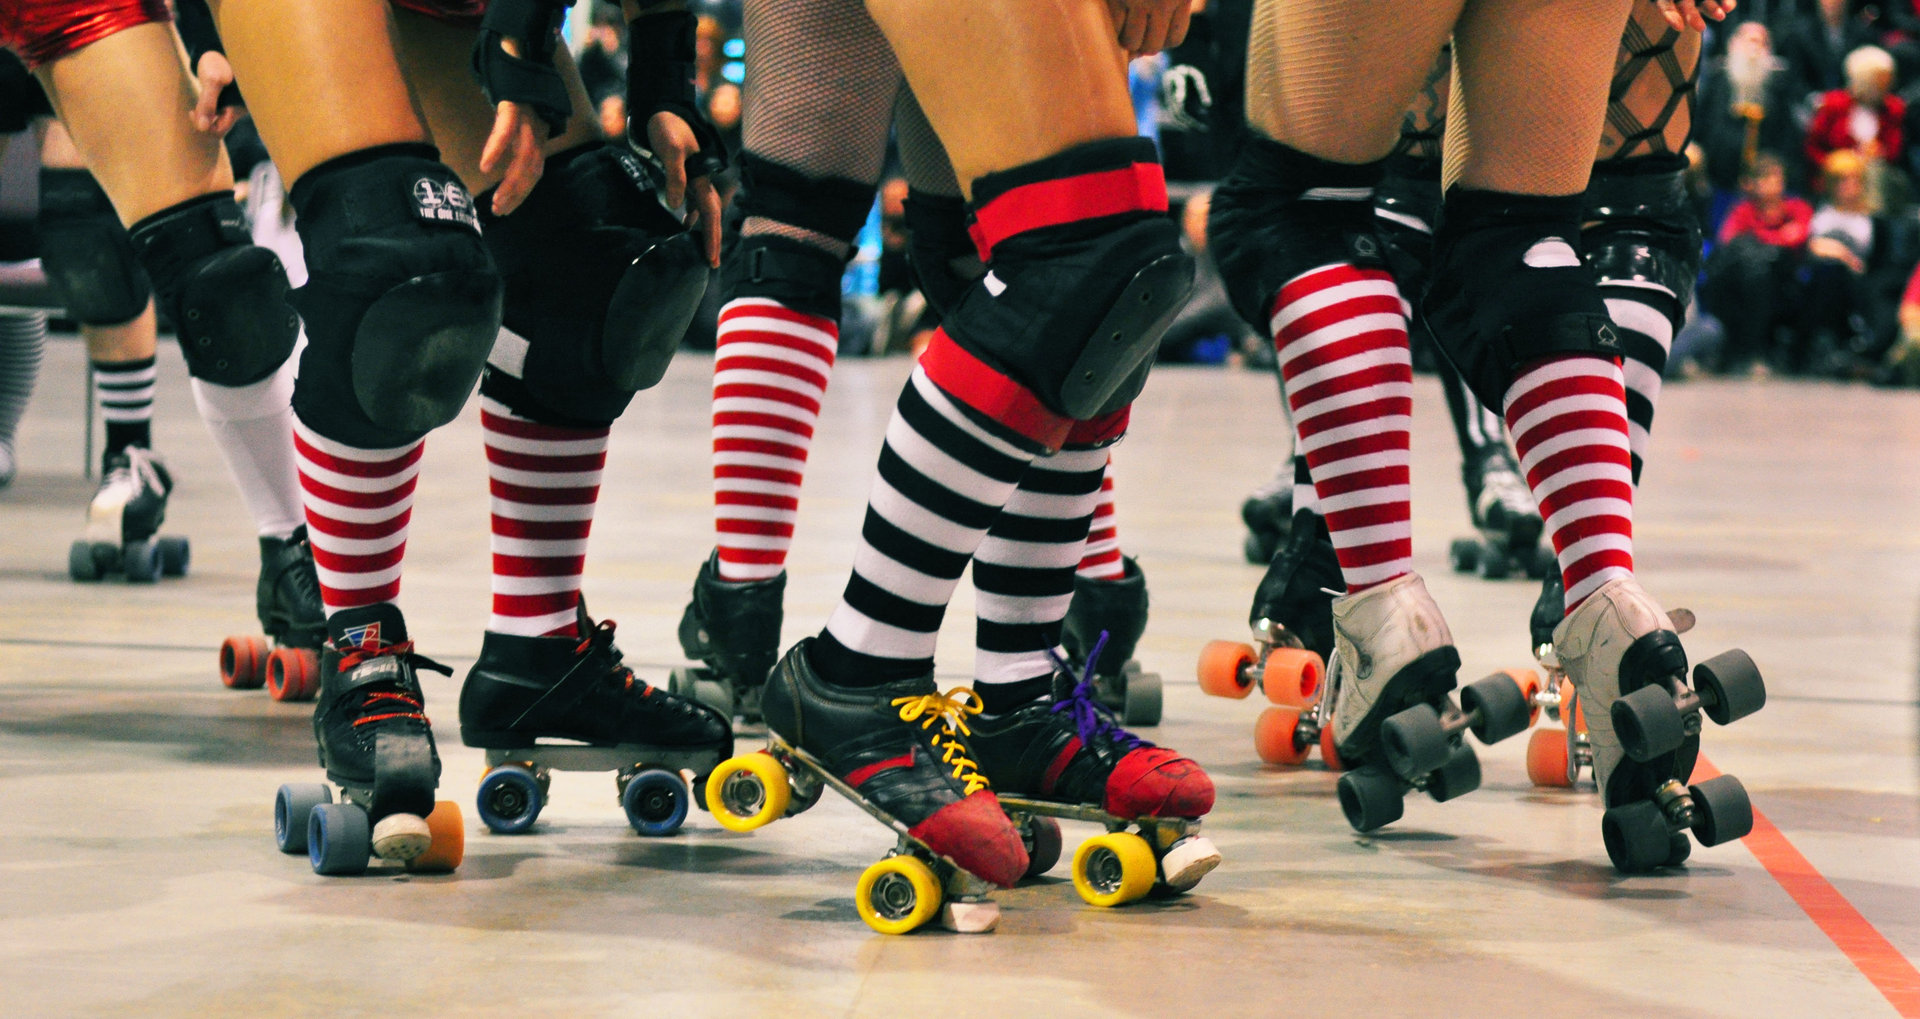 Culture :: Entering the World of Roller Derby